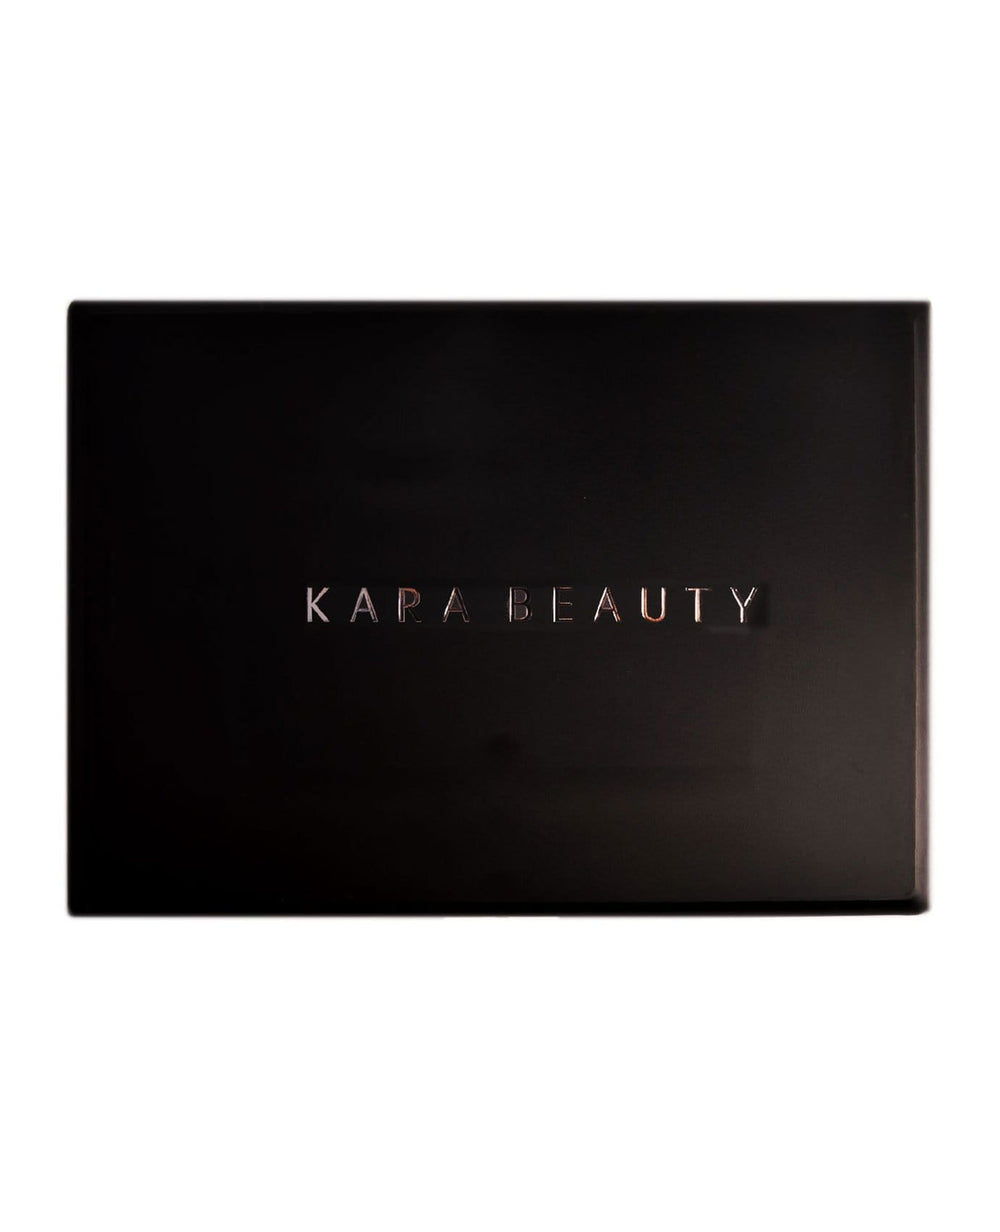 Kara Beauty ES01 Satin Eyeshadow Palette